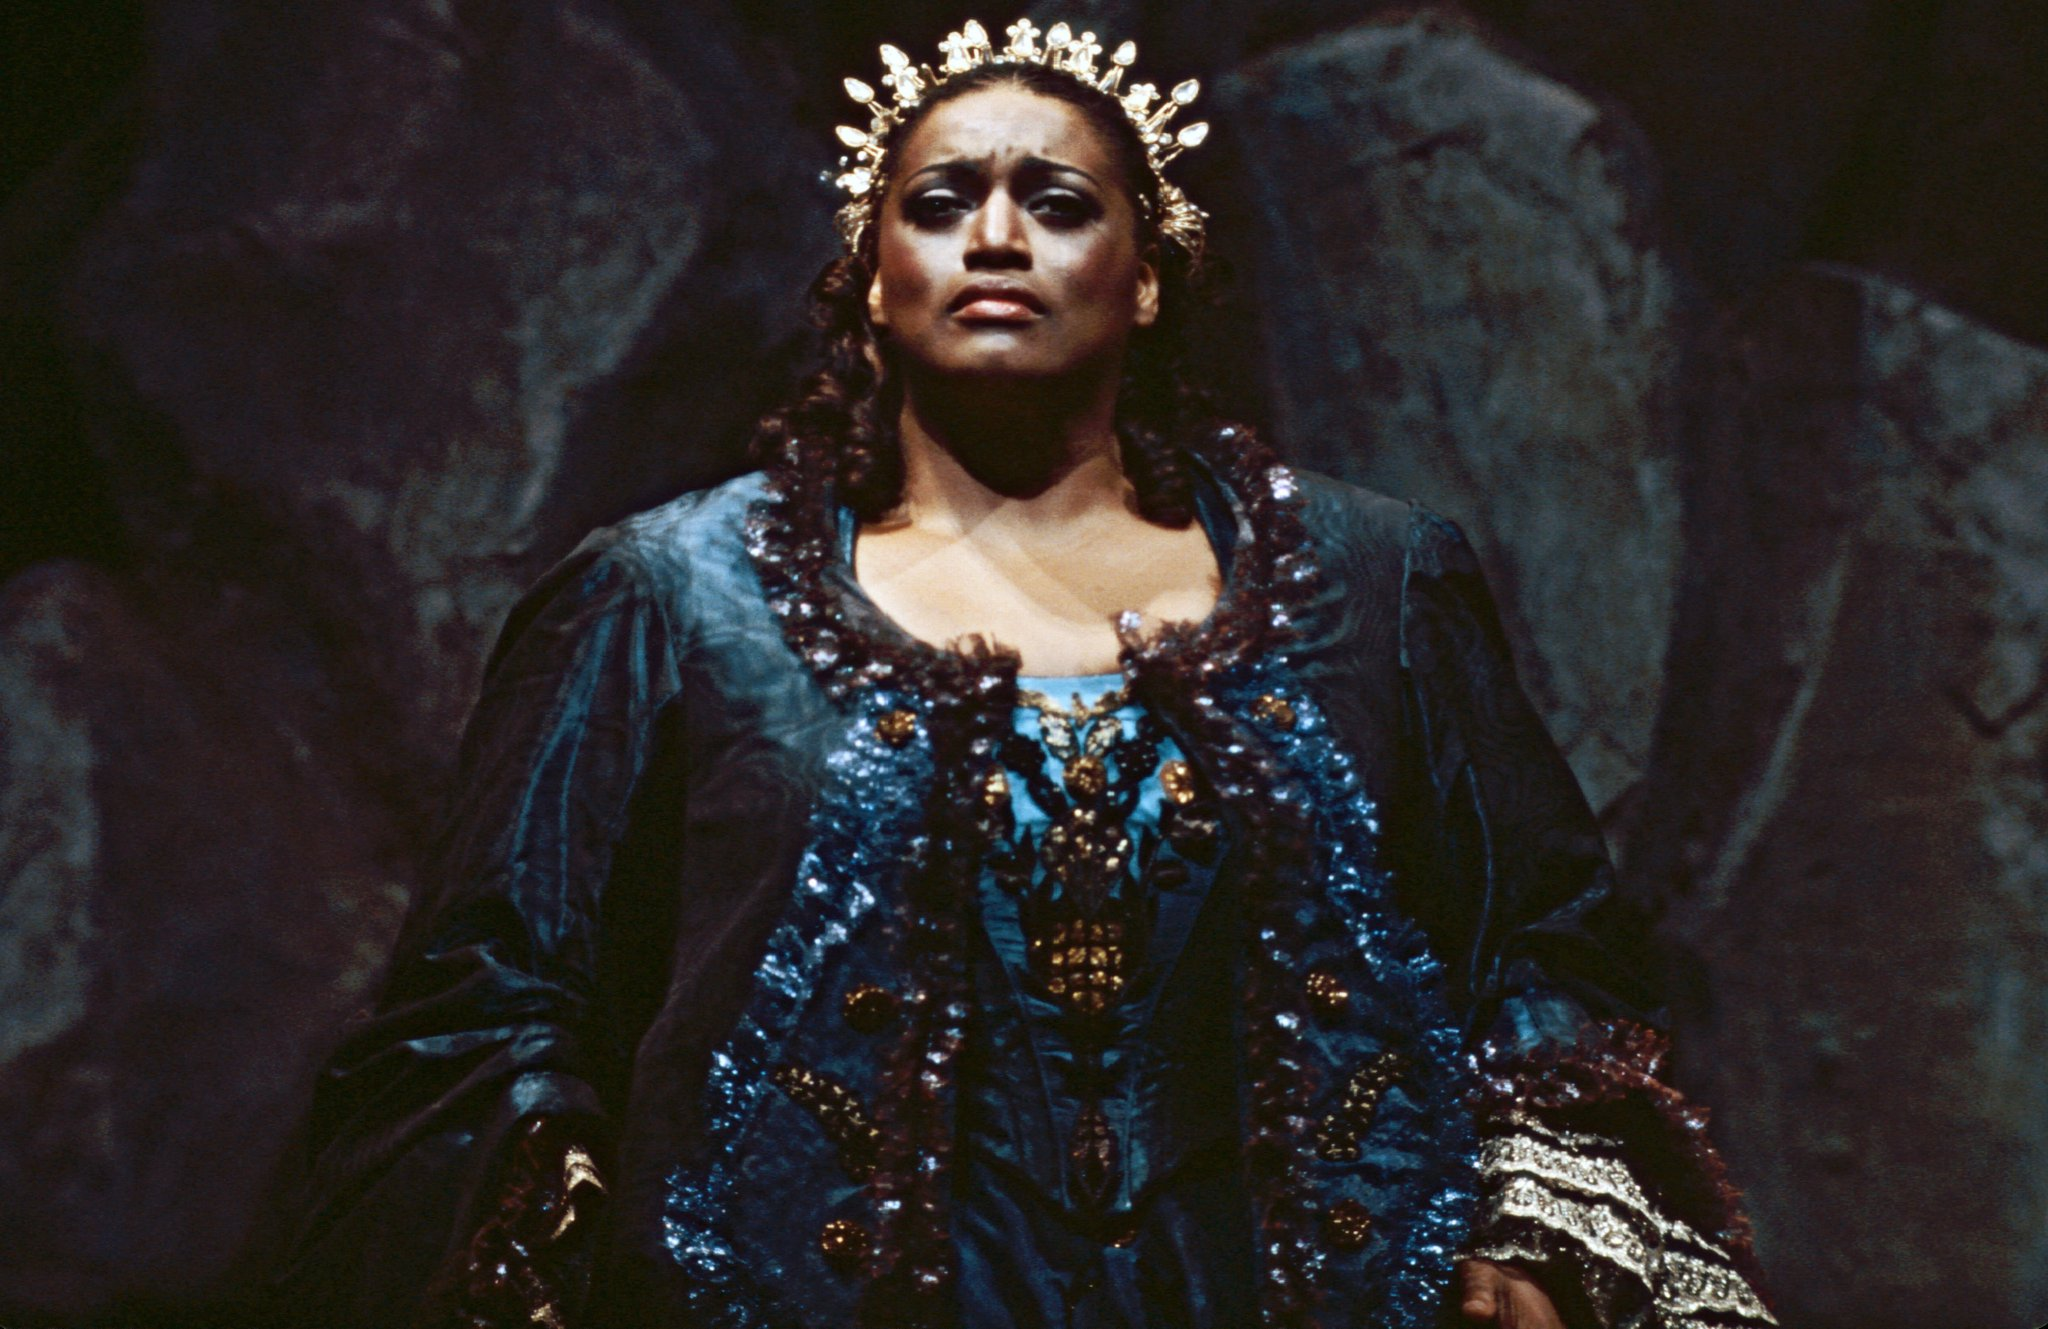 Jessye Norman (1945–2019), one of the great sopranos of the past half-century, who sang more than 80 unforgettable performances with the company. We extend our condolences to Ms. Norman's family and friends. bit.ly/2nVisQ1